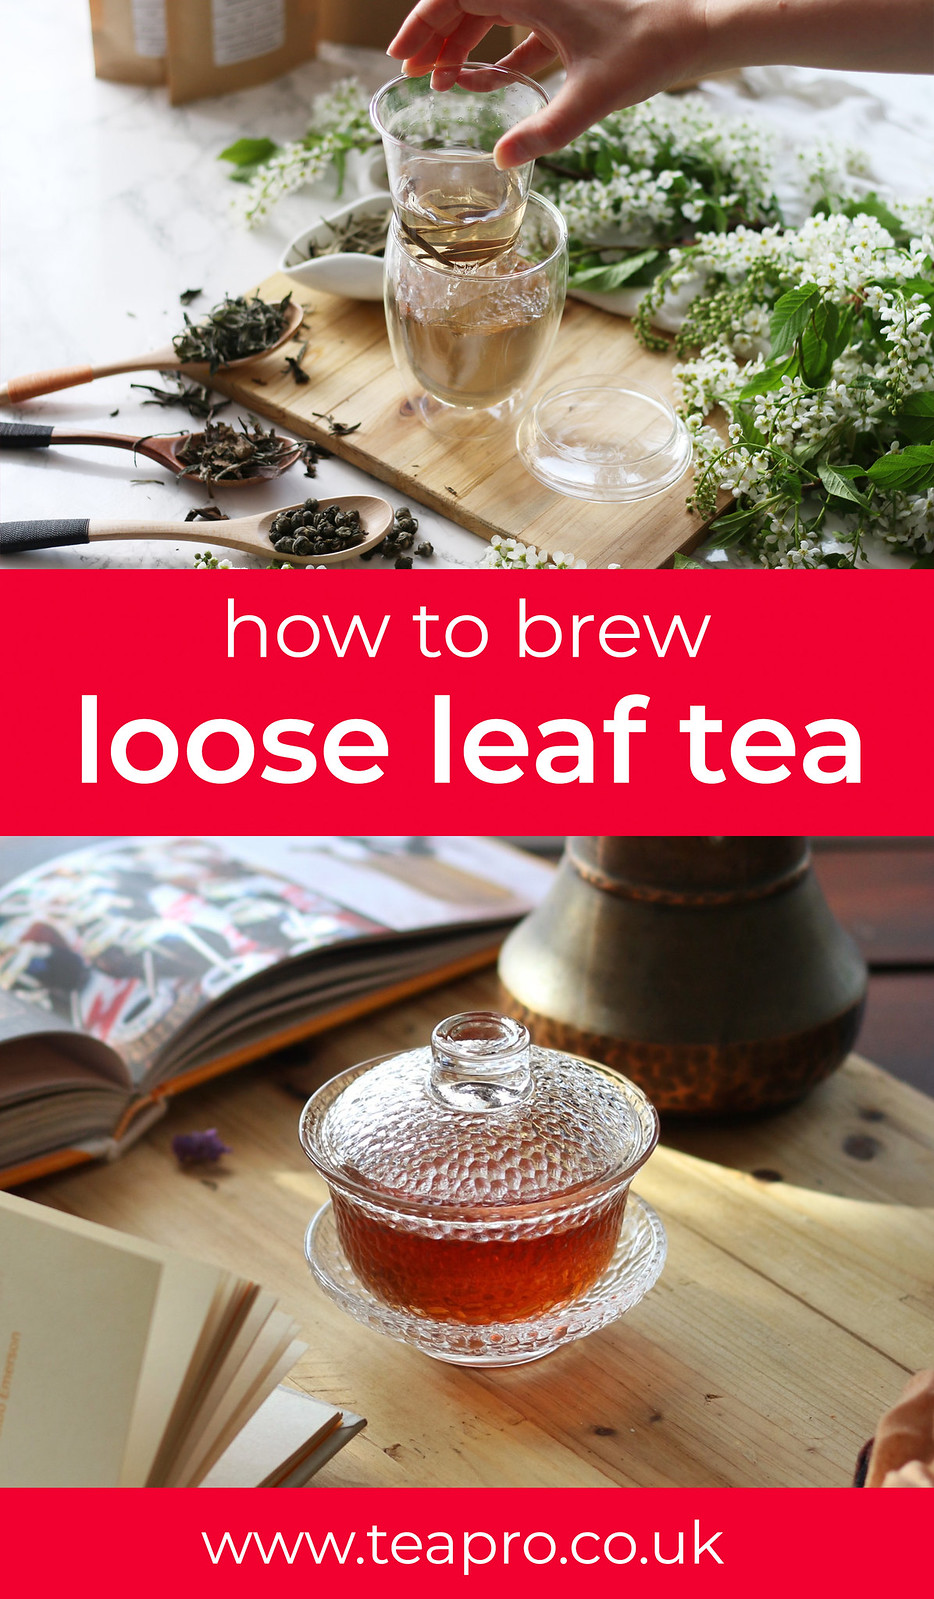 how-to-brew-loose-leaf-tea